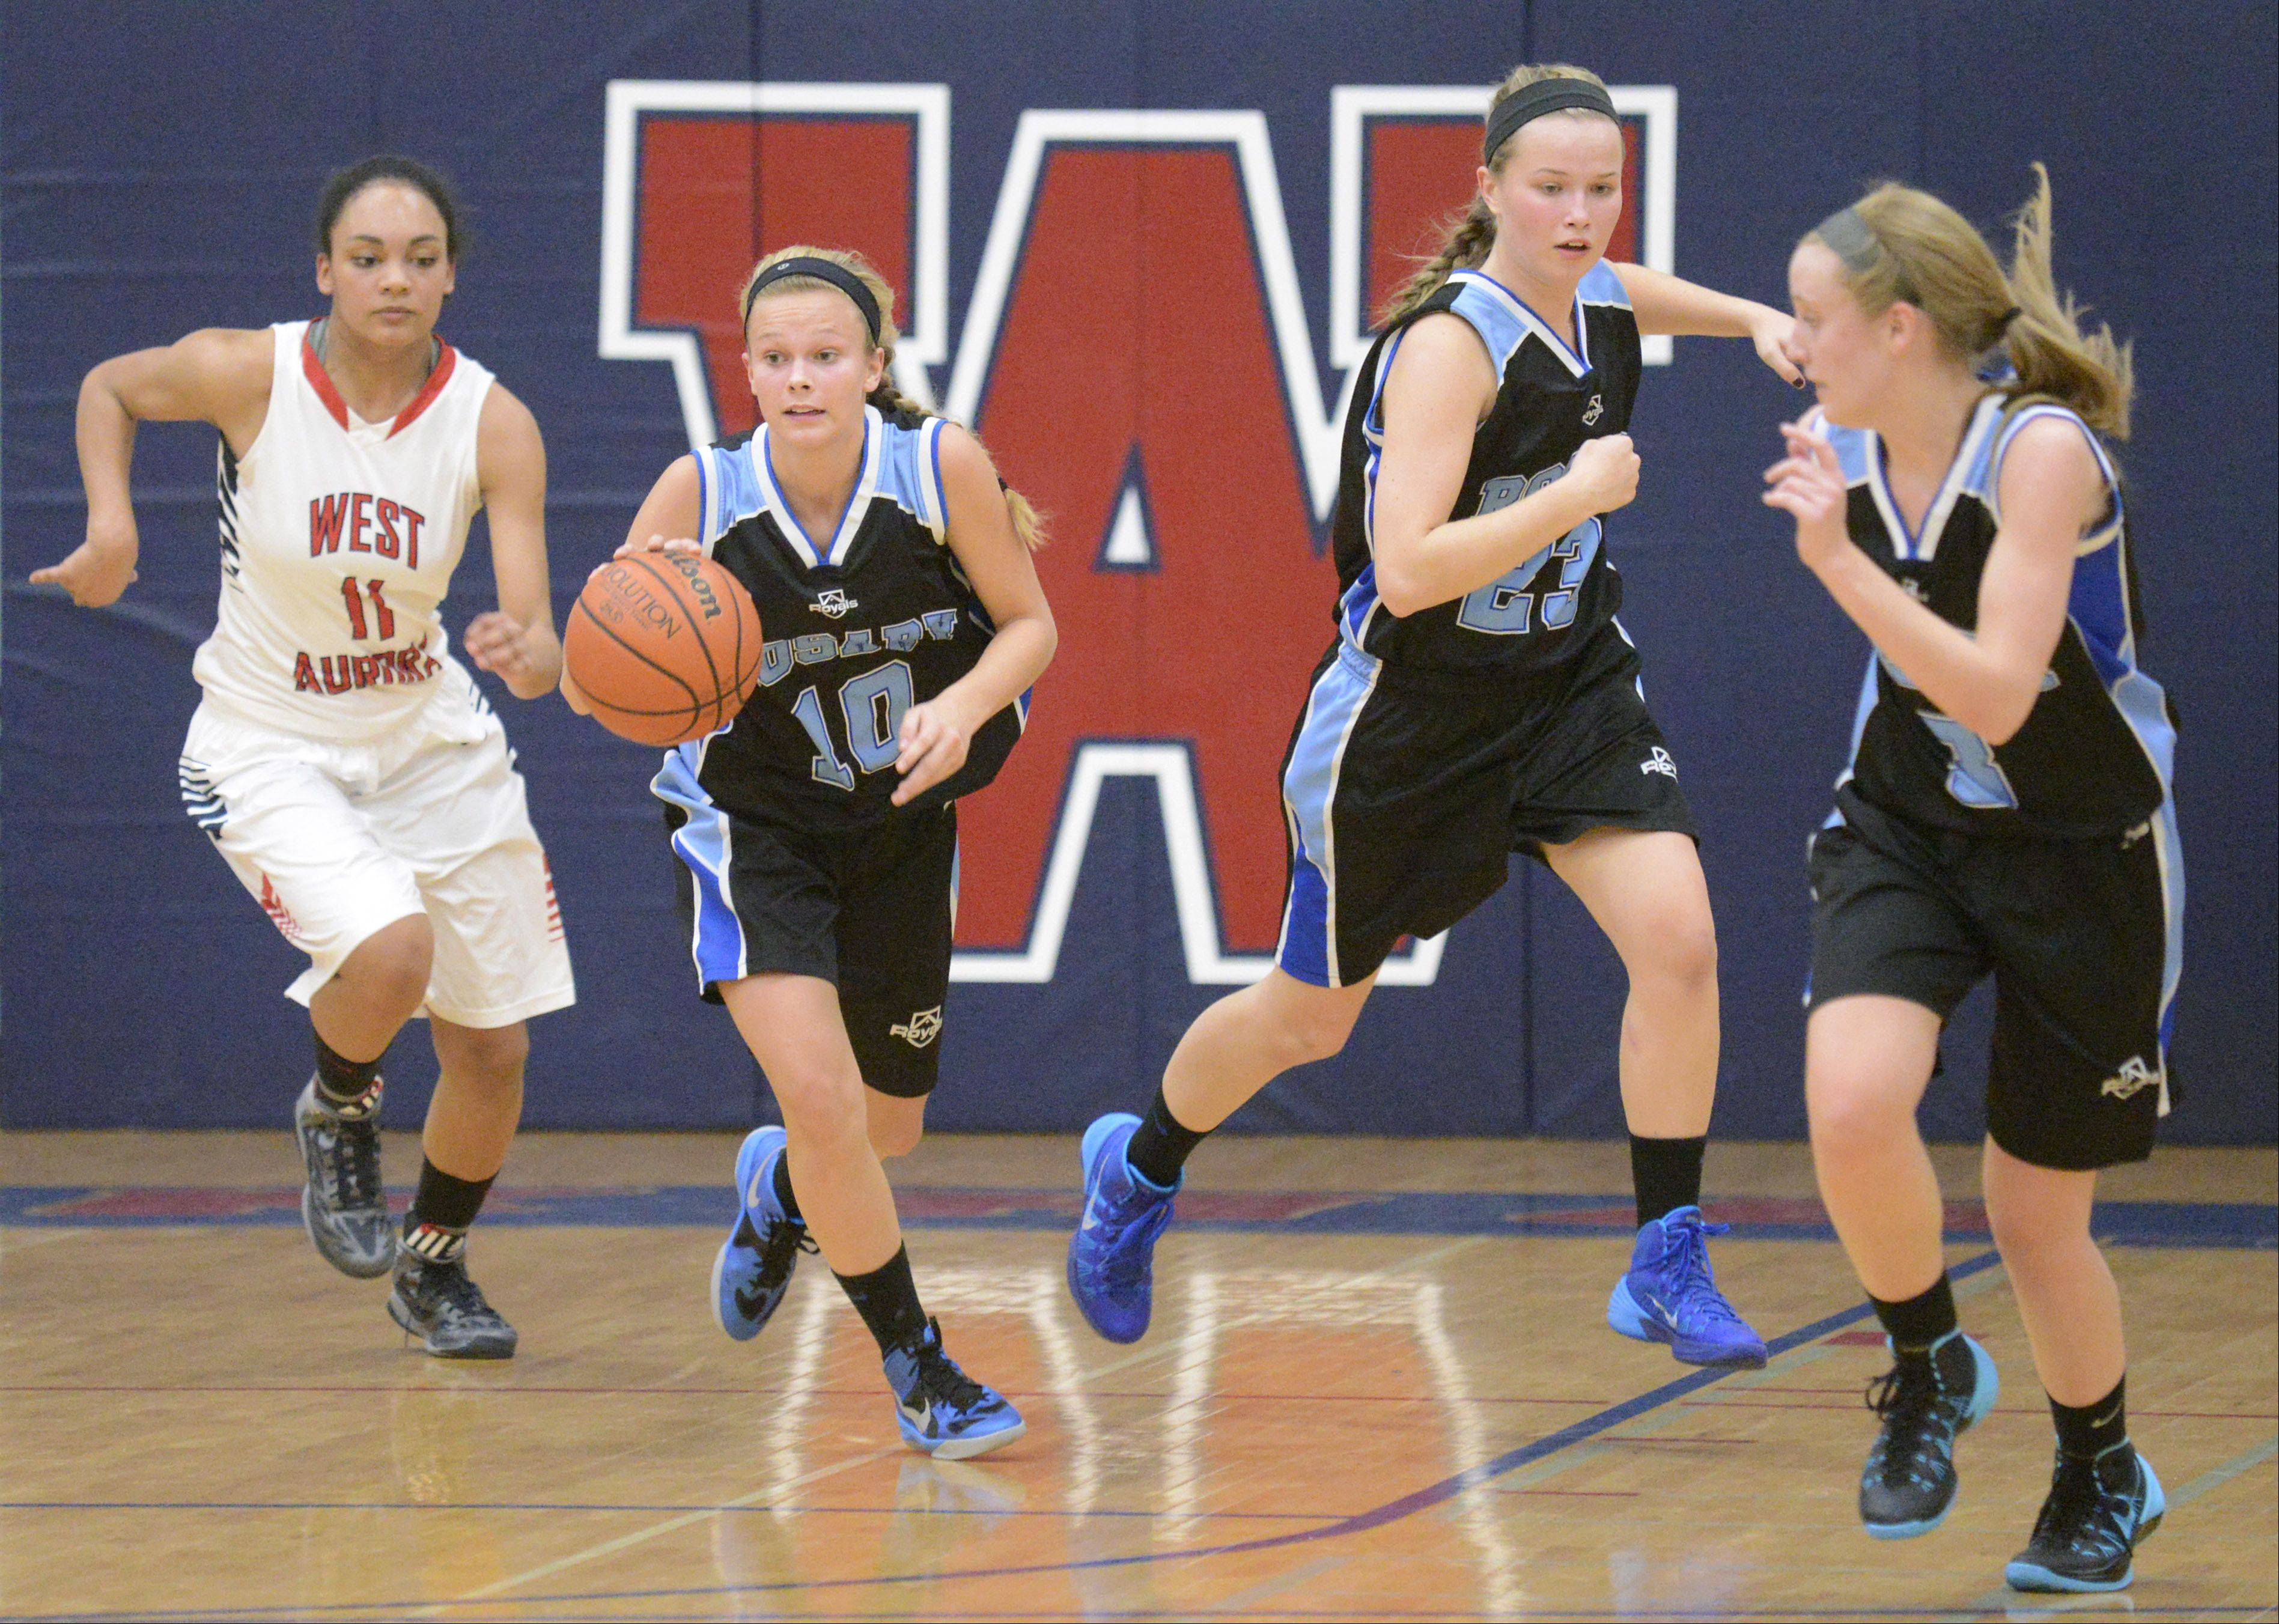 Rosary's Quincy Kellett takes off with the ball in the second quarter on Tuesday, December 3.